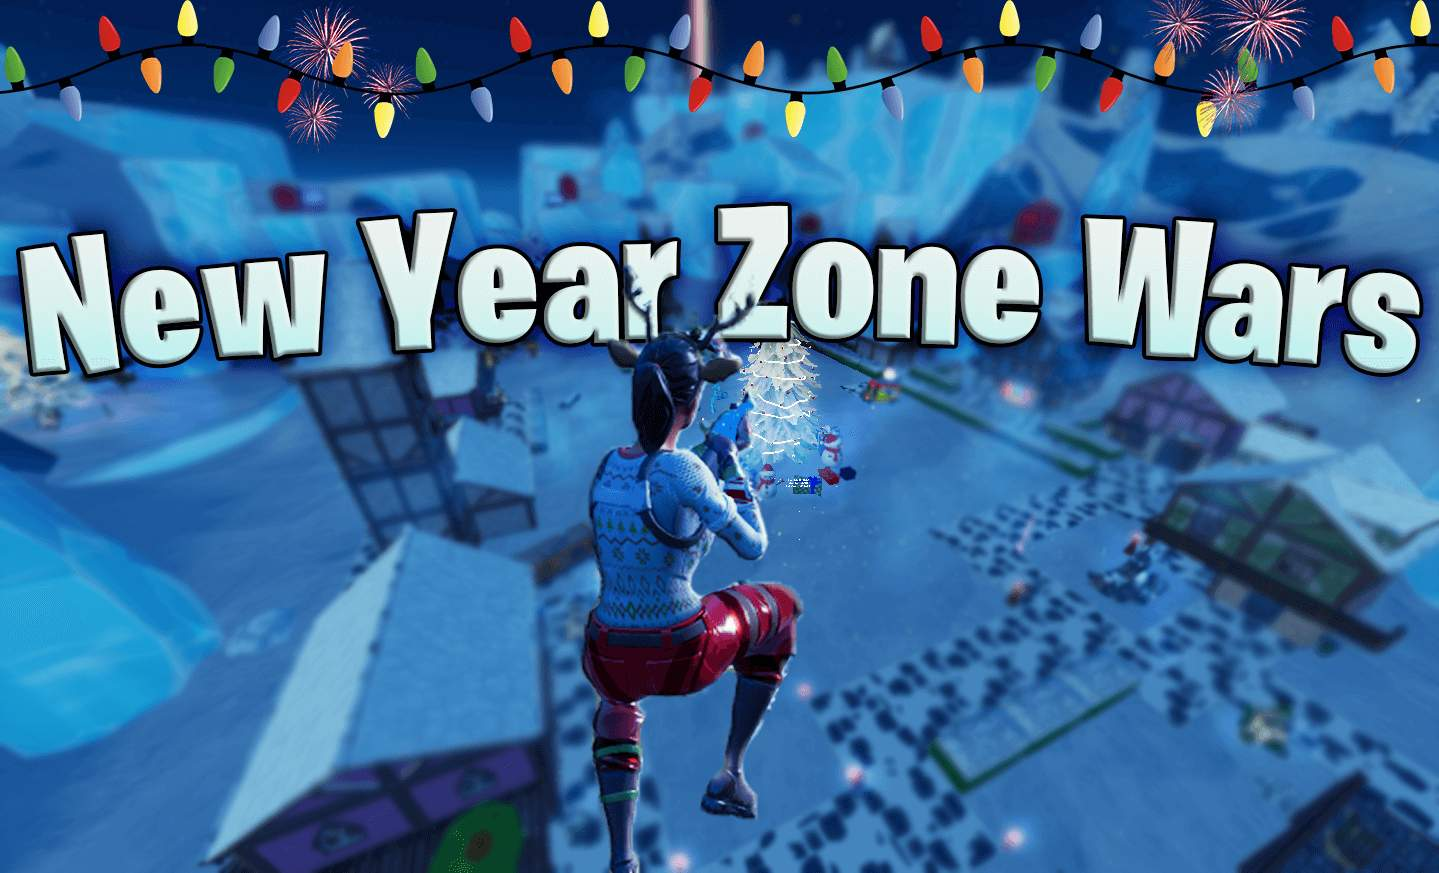 NEW YEAR ZONE WARS